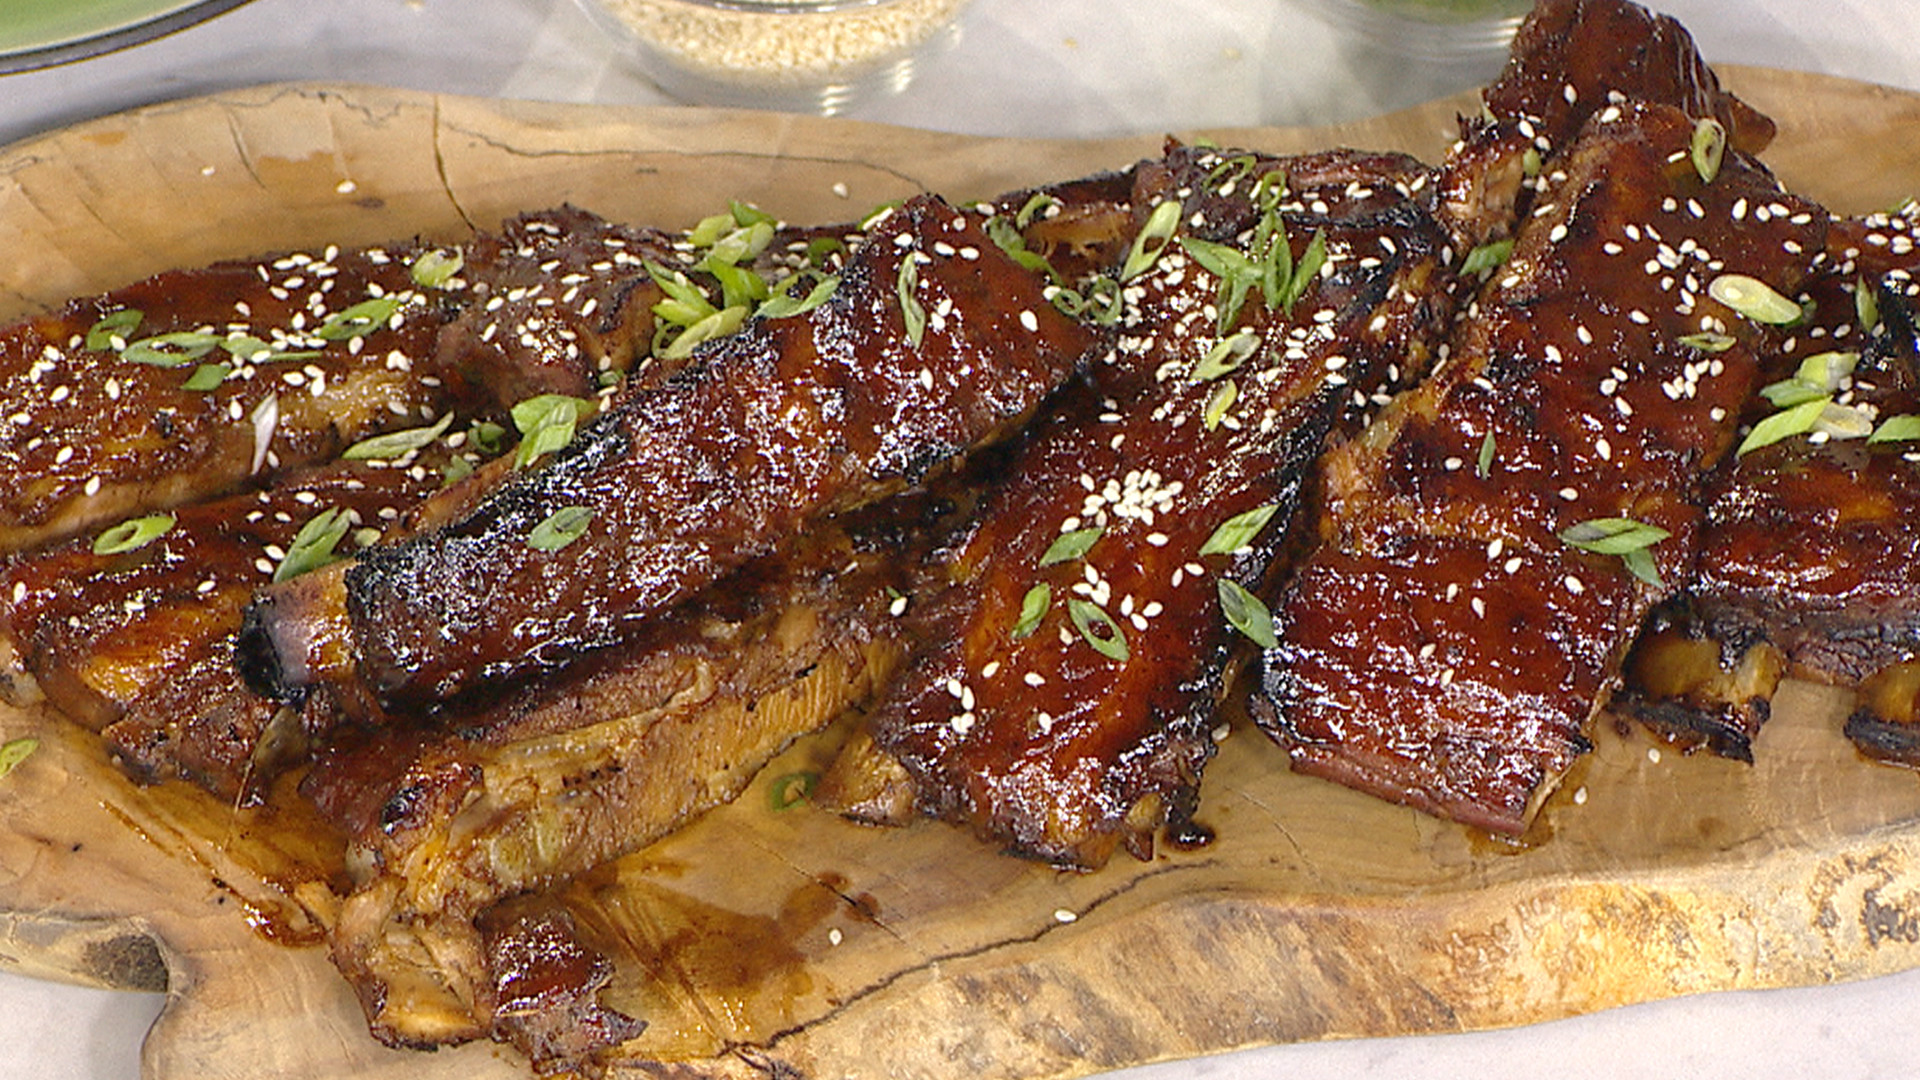 Pork Ribs Recipe  For takeout Make Chinese style marinated pork ribs at